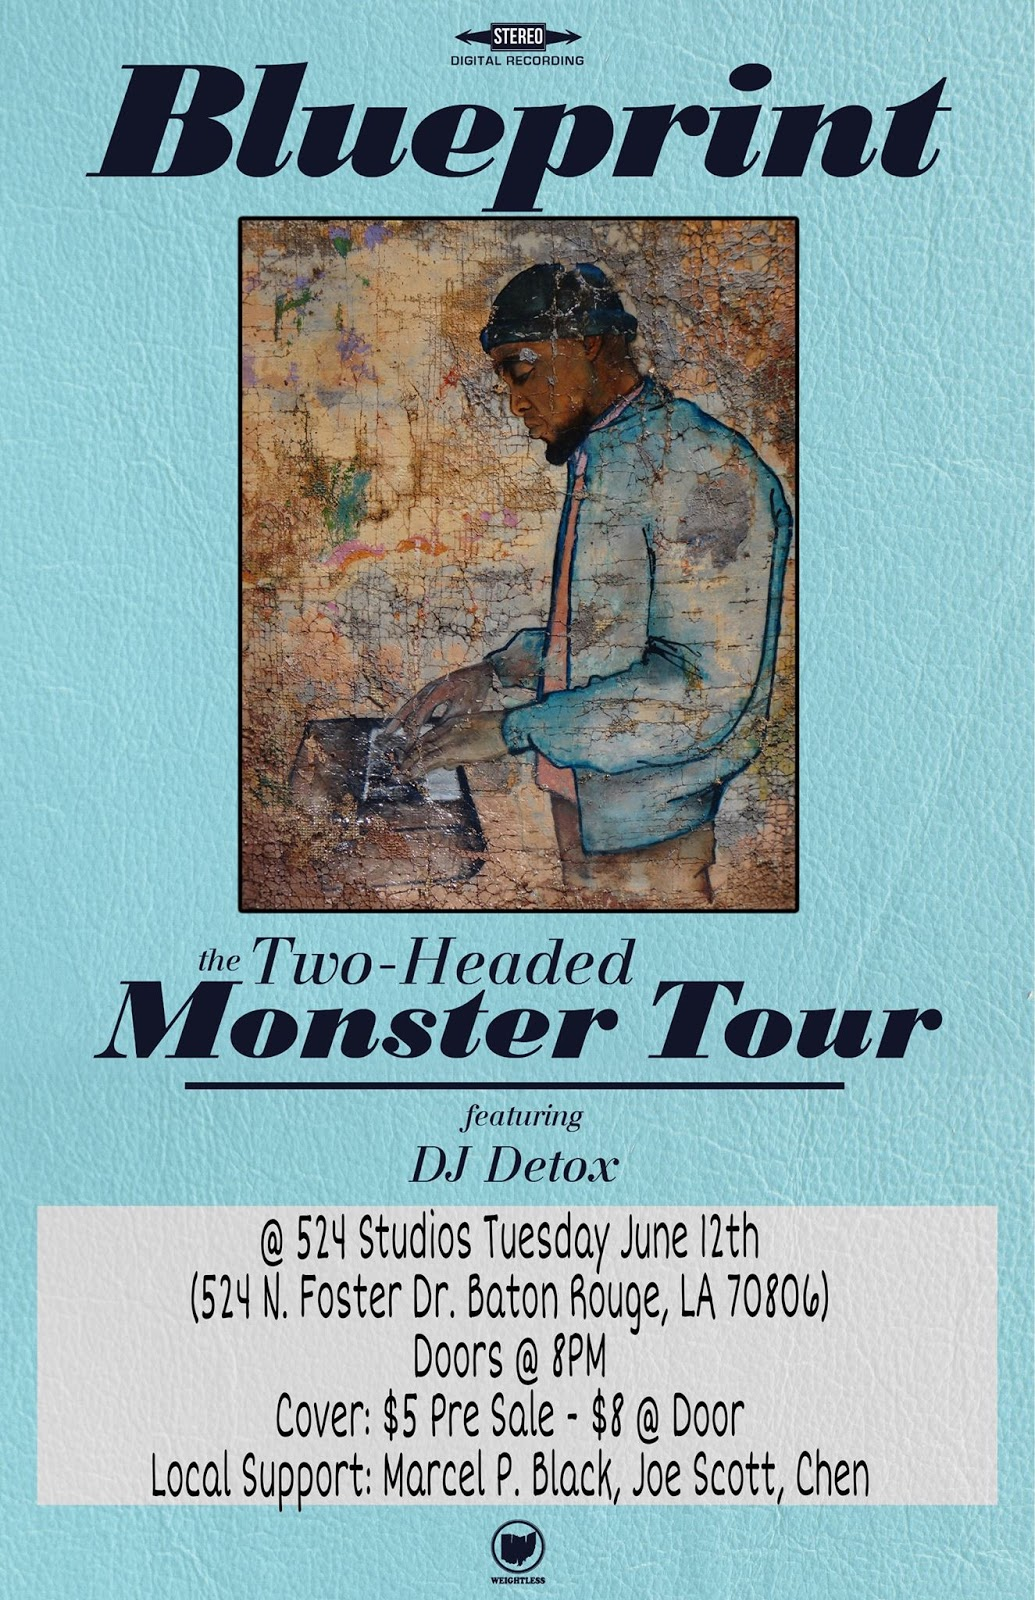 The non traditional conscious emcee ohio legendary emceeproducerauthorfilmaker blueprint brings his two headed monster tour to baton rouge to promote his new album of the same name malvernweather Image collections